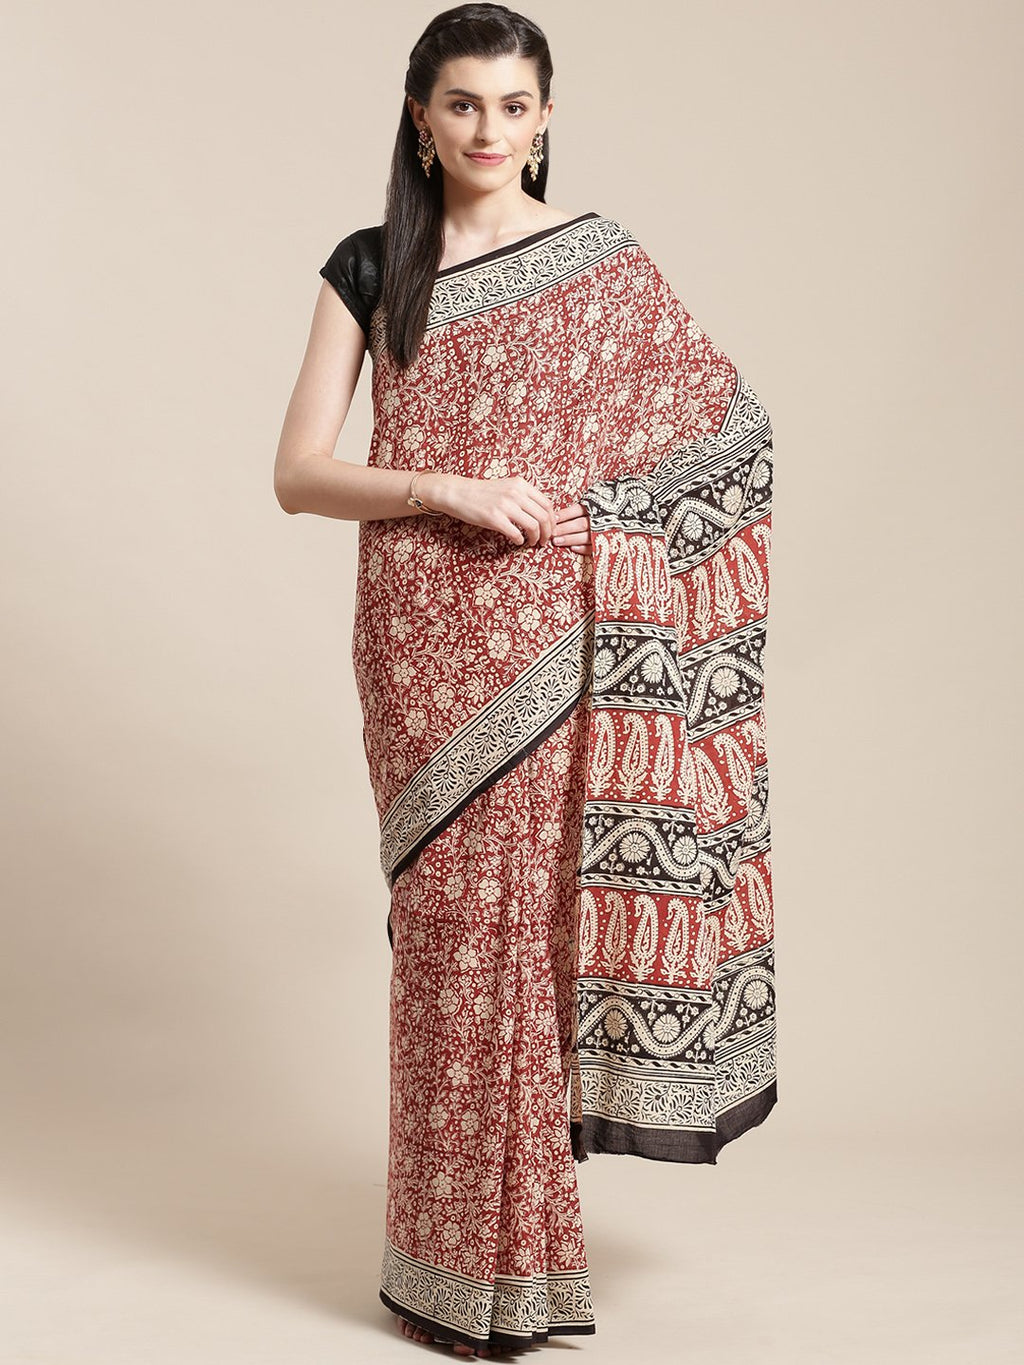 Beige & Black Handblock Print Bagru Saree-Saree-Kalakari India-BHKPSA0104-Cotton, Geographical Indication, Hand Blocks, Hand Crafted, Heritage Prints, Sanganeri, Sarees, Sustainable Fabrics-[Linen,Ethnic,wear,Fashionista,Handloom,Handicraft,Indigo,blockprint,block,print,Cotton,Chanderi,Blue, latest,classy,party,bollywood,trendy,summer,style,traditional,formal,elegant,unique,style,hand,block,print, dabu,booti,gift,present,glamorous,affordable,collectible,Sari,Saree,printed, holi, Diwali, birthday